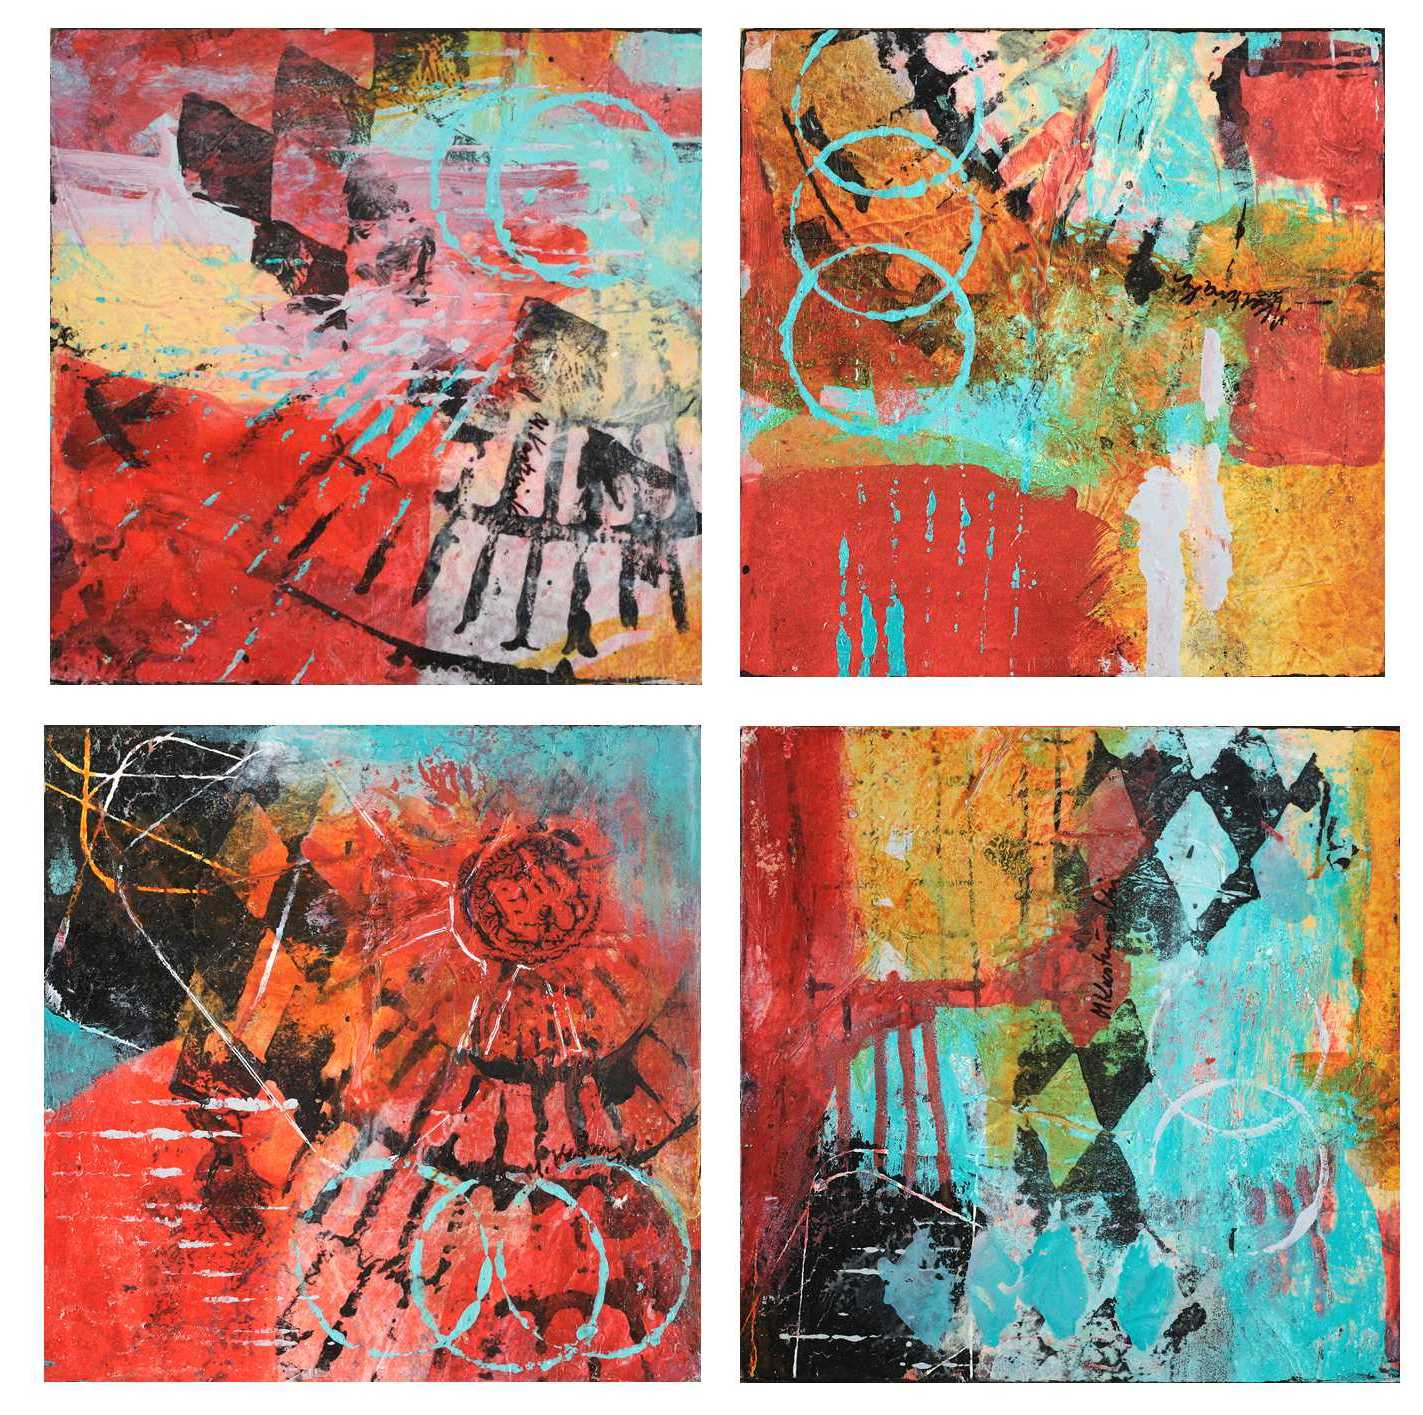 art spots abstract red-teal group of 4 cropped.jpg